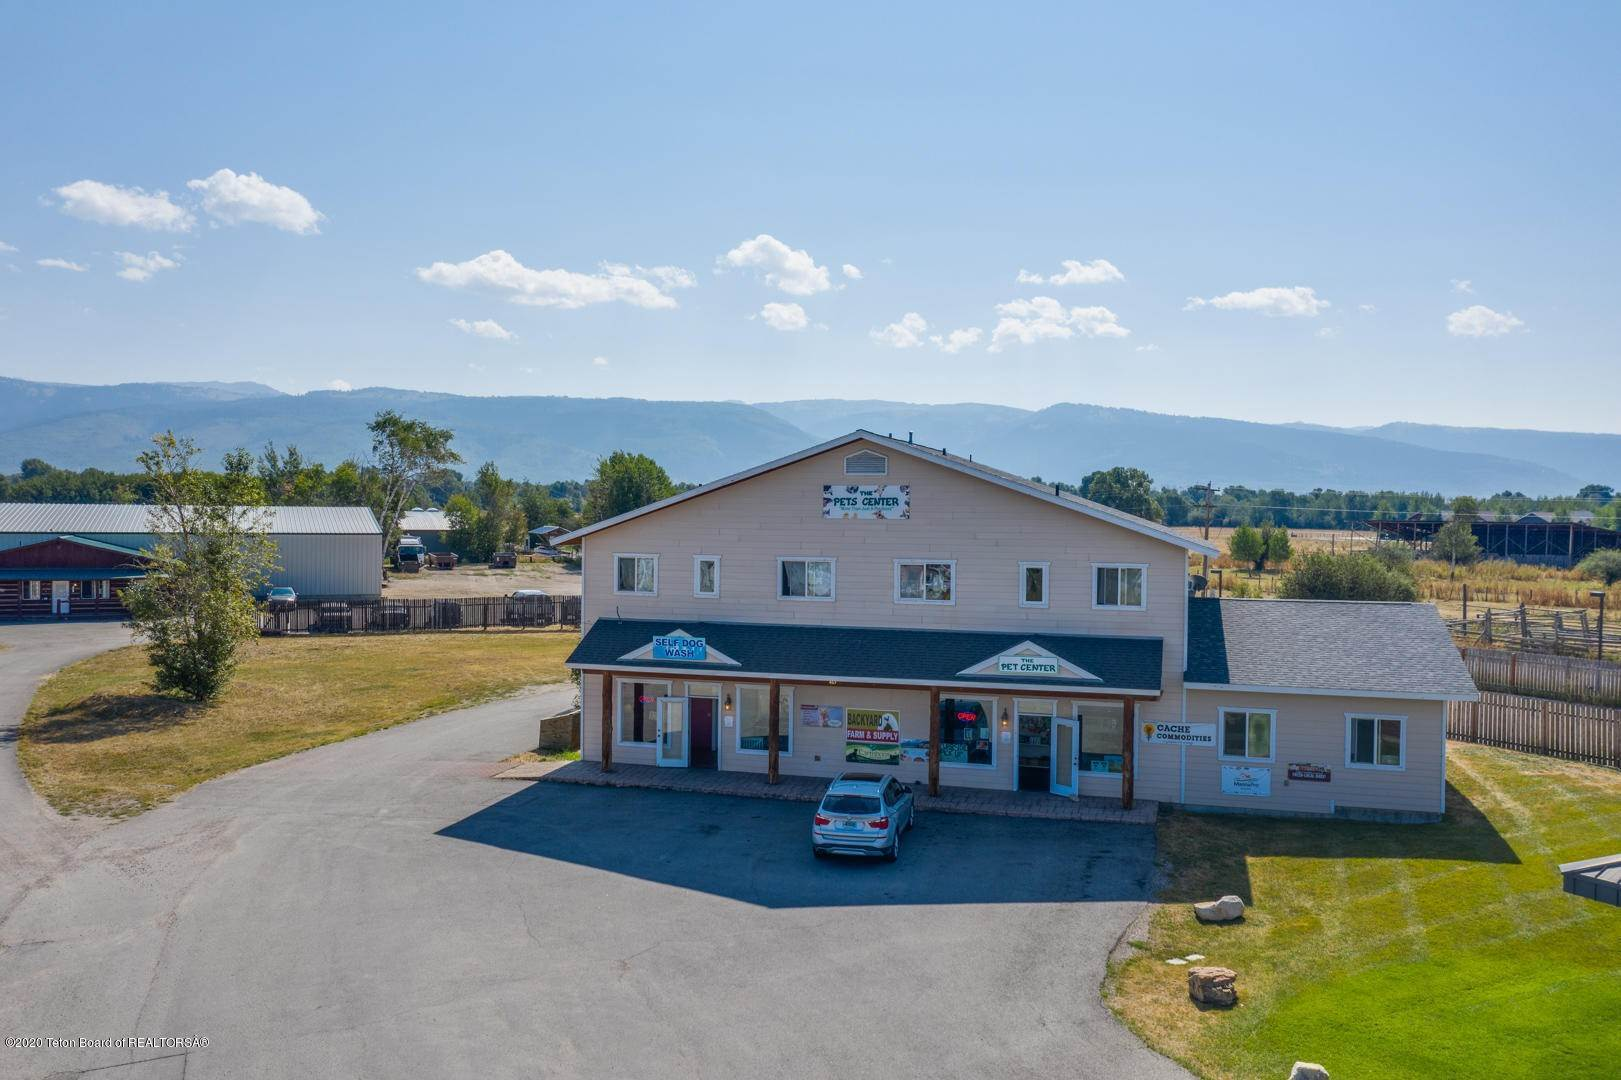 Commercial for Sale at 465 S MAIN STREET Driggs, Idaho 83422 United States